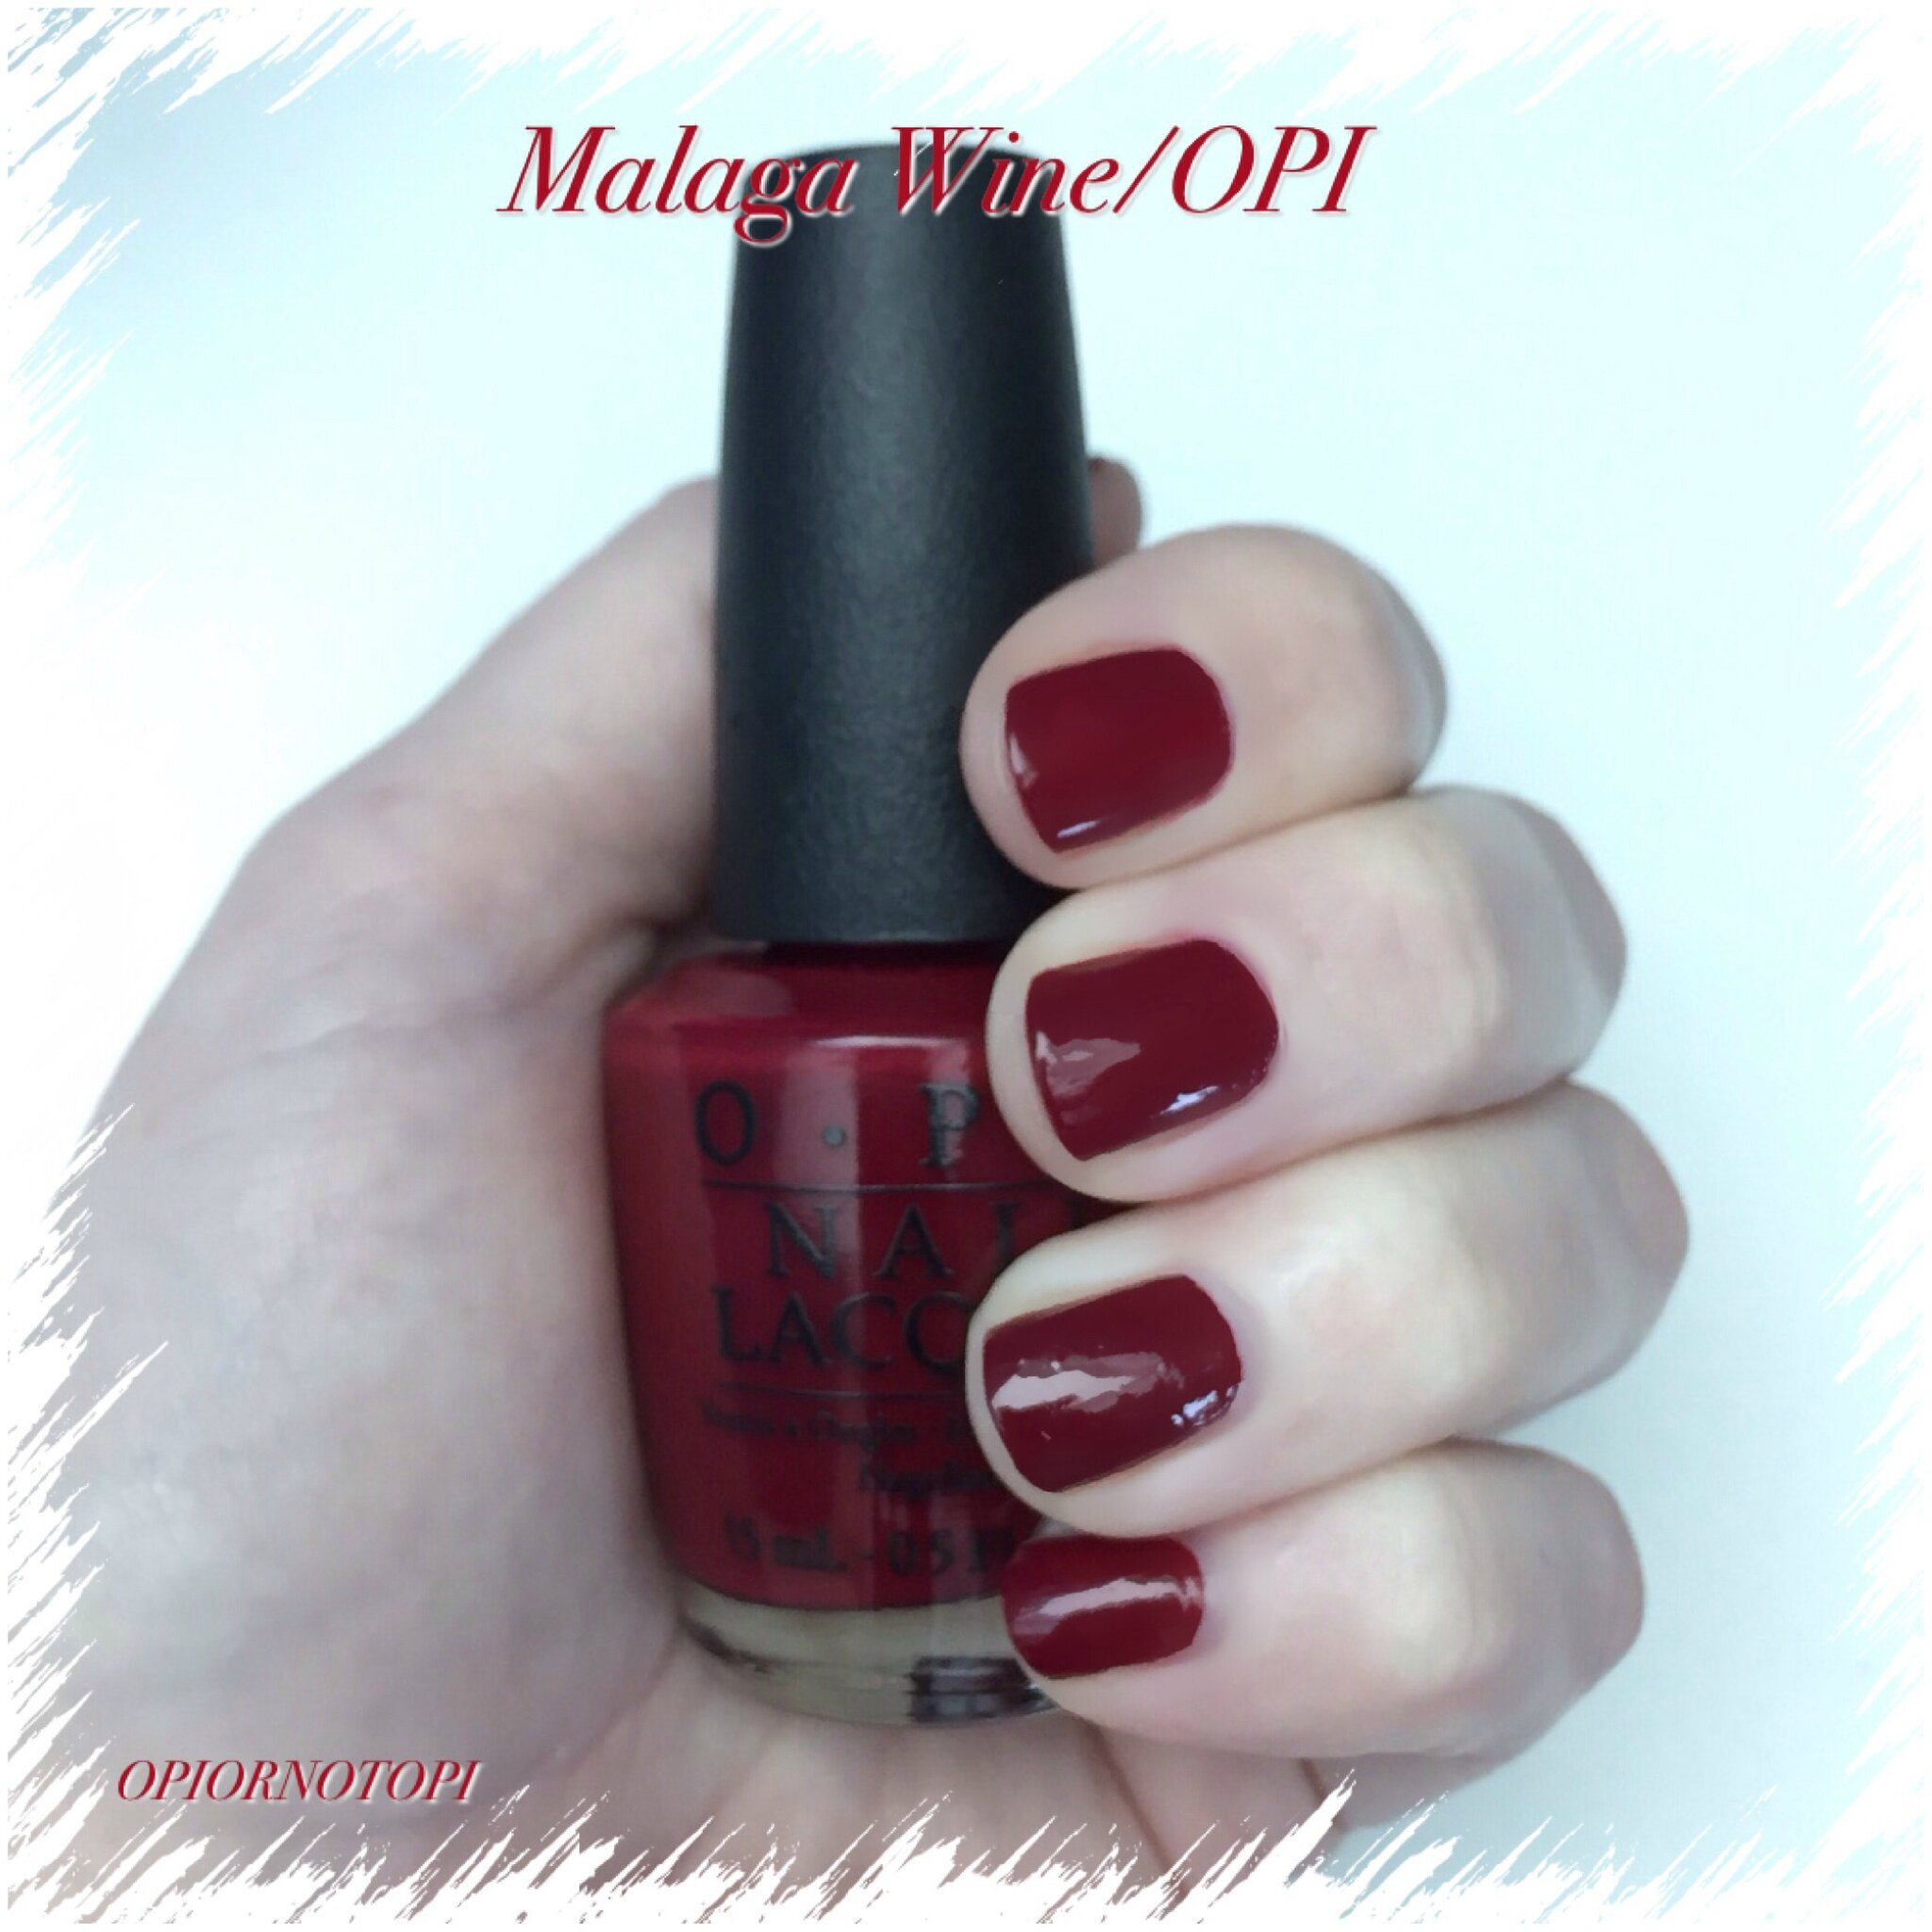 Avis Malaga Malaga Wine Ou Bordeaux Wine Opi Or Not Opi